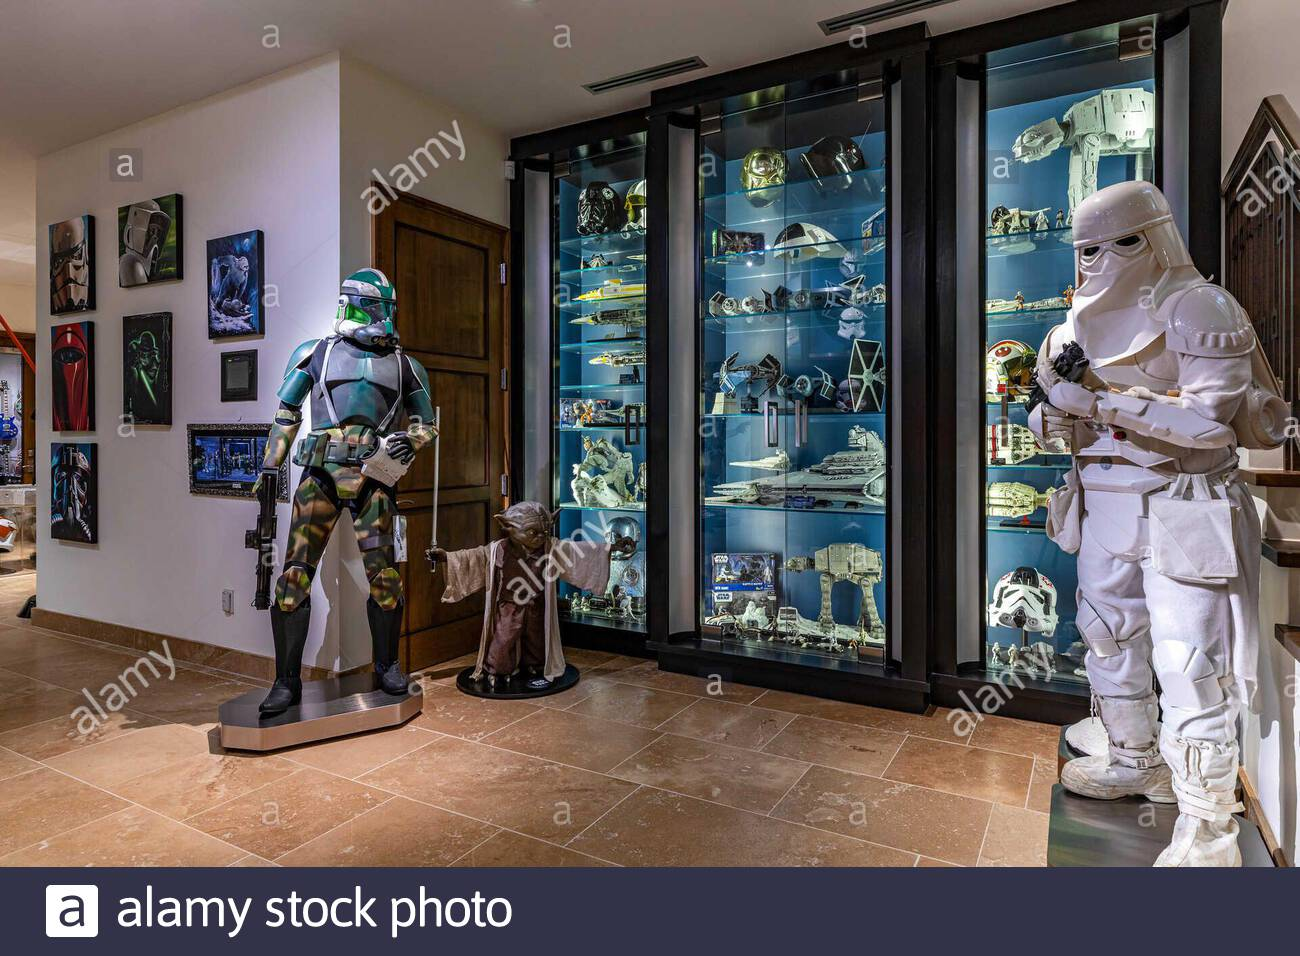 **MANDATORY CREDIT: The Agency/Cover Images**  A $26,500,000 property is on sale that is the ultimate Star Wars fan's dream.   In a galaxy not so far away—actually the enclave of Hidden Hills in L.A. —is a home featuring an out-of-this-world collection of memorabilia from the sci-fi saga.   Inclusion of the collectibles is reportedly open to negotiation, and there is also an 18-seat theatre is outfitted with Star Wars-inspired details.   Additional features include a private on-site observatory, basement entertainment complex with home theatre, a fitness studio, a wine room, a 6-car garage and Stock Photo